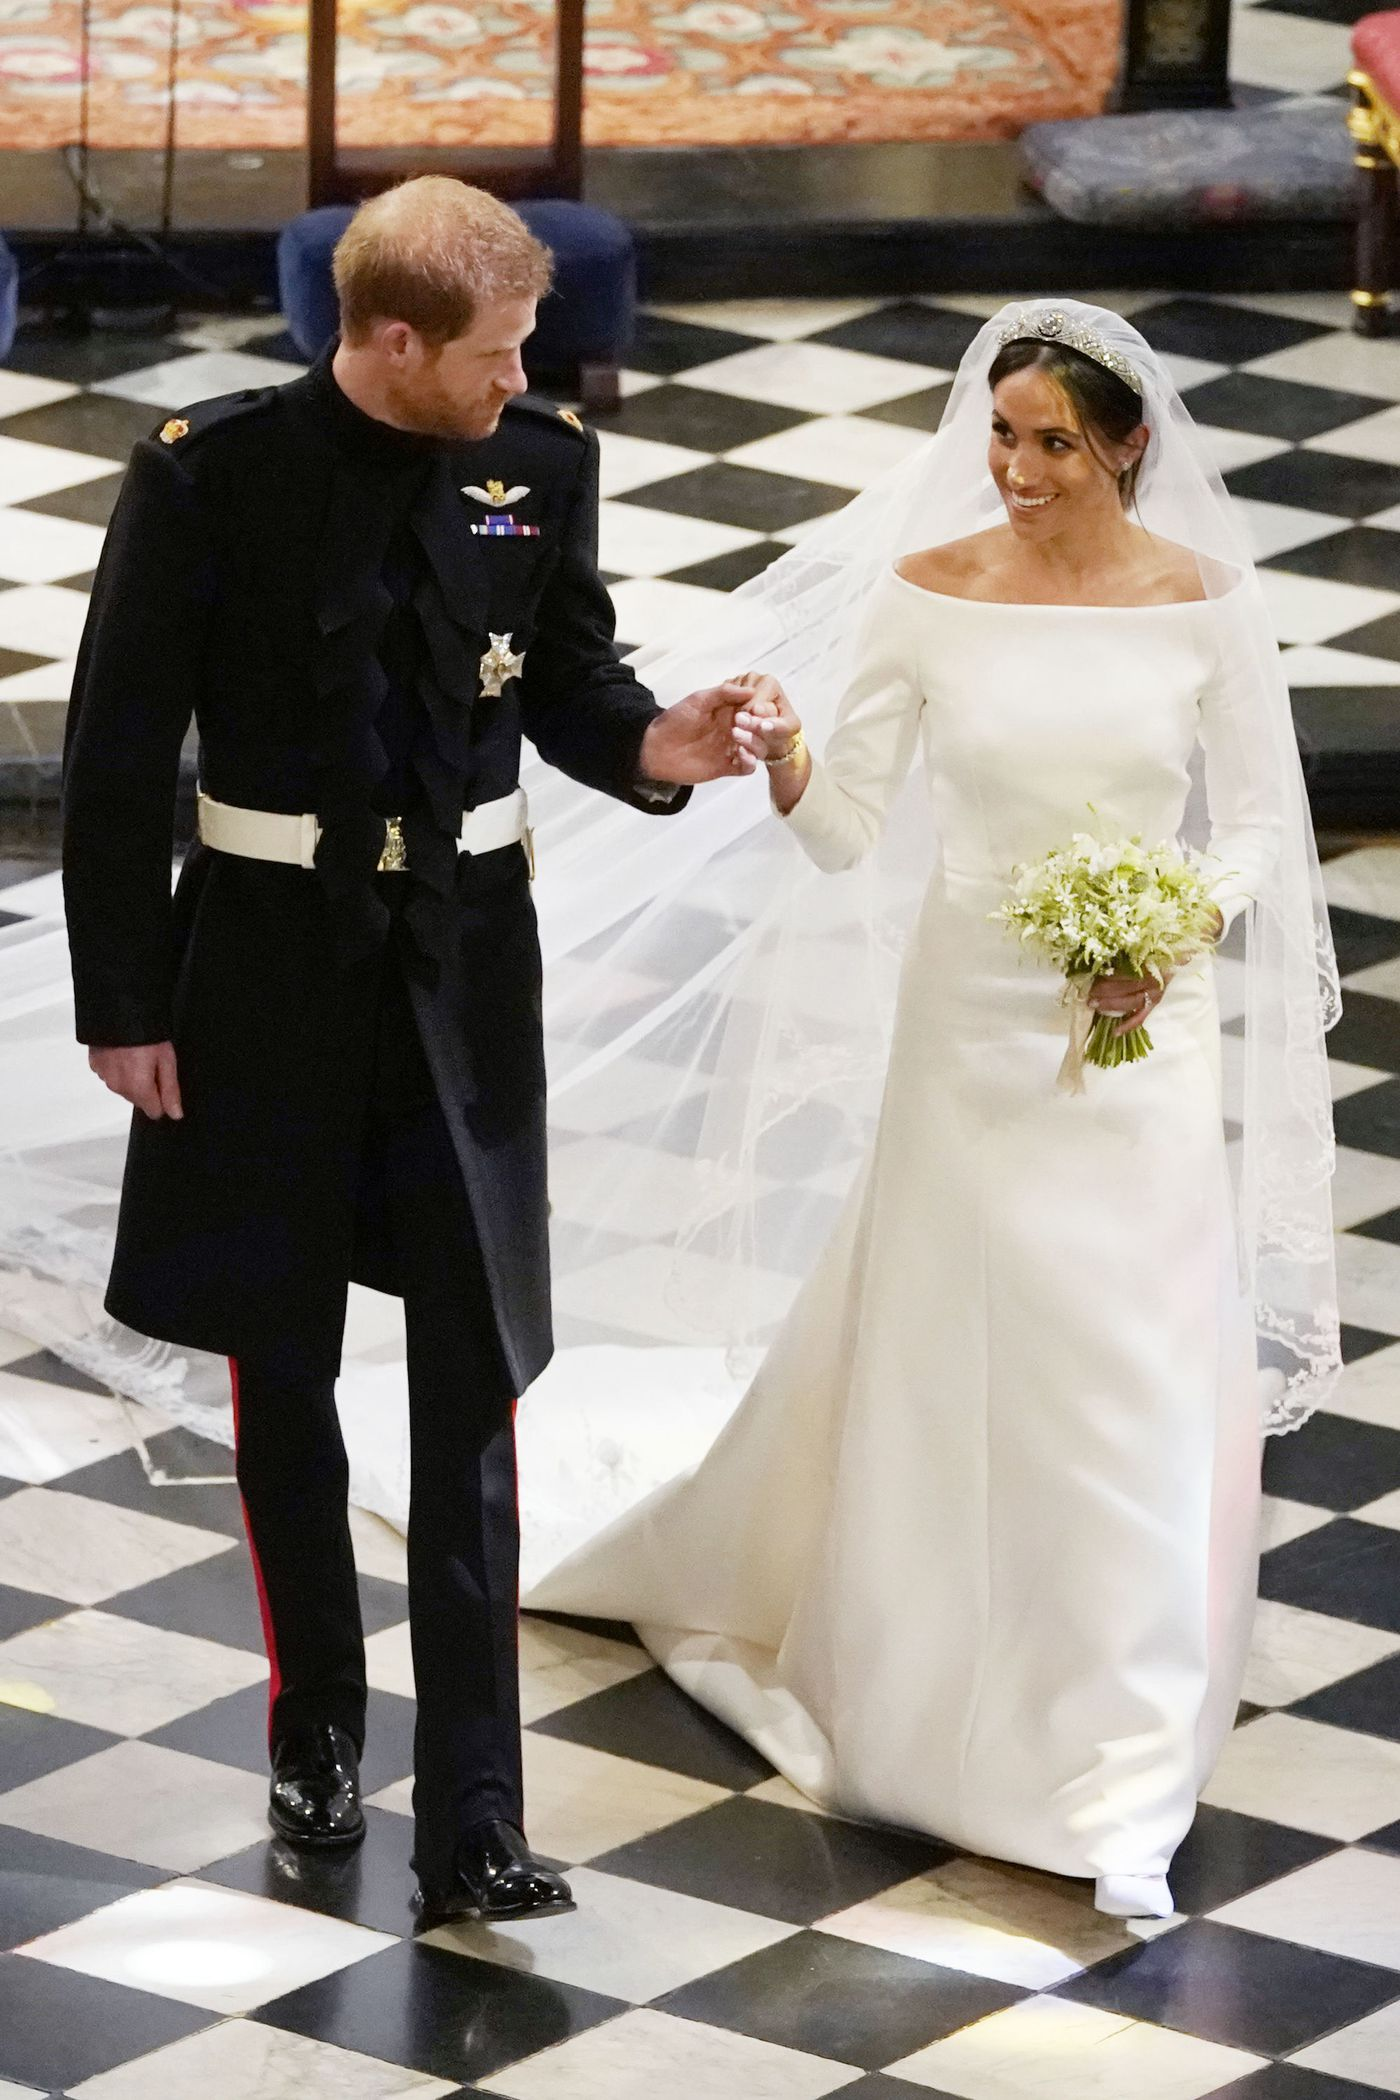 Meghan Markle Wedding Pictures.Meghan Markle S Royal Style Is Far More Conservative Than It Used To